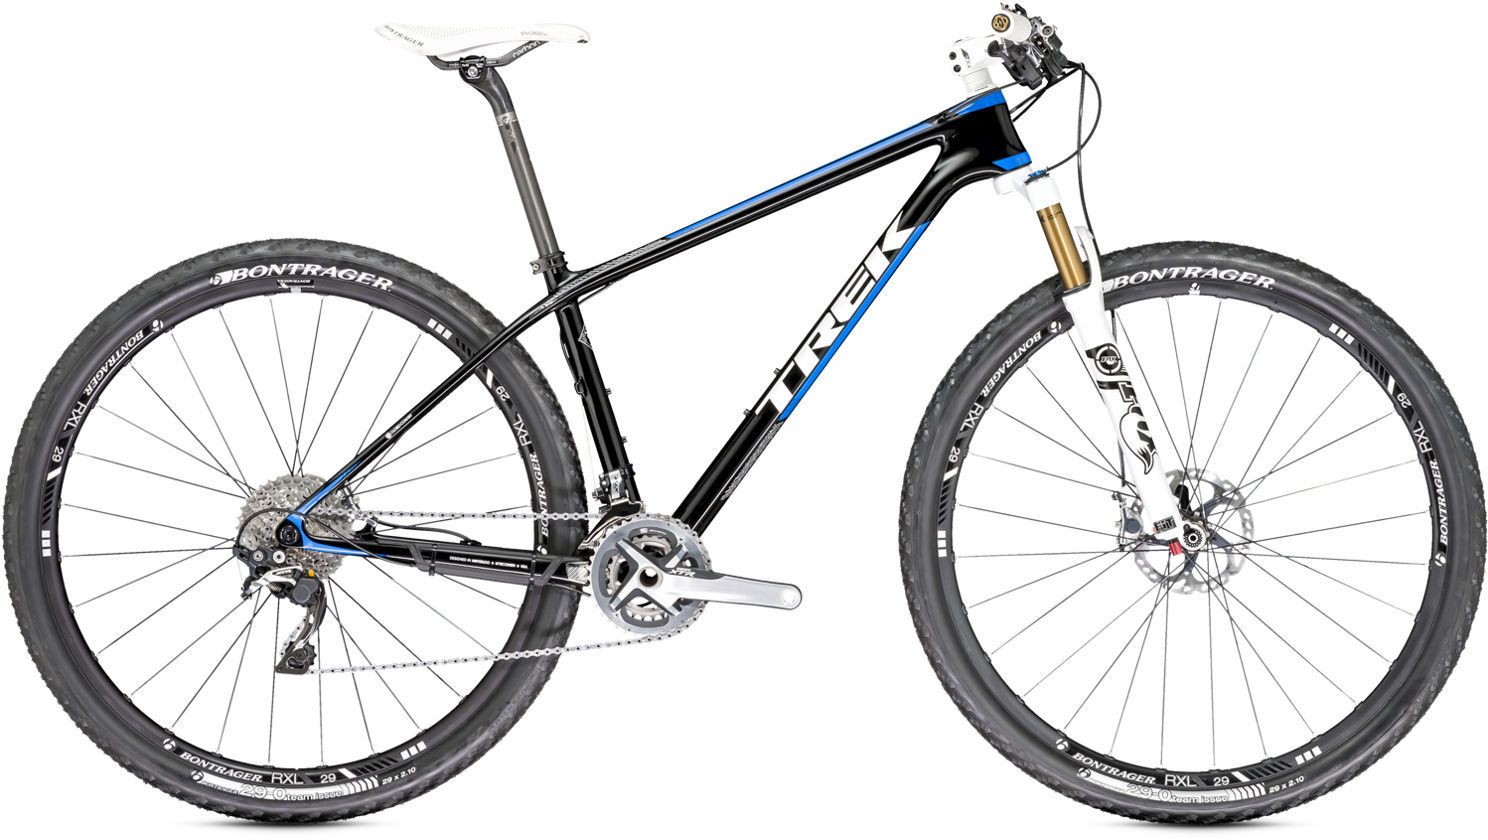 Trek Superfly Models